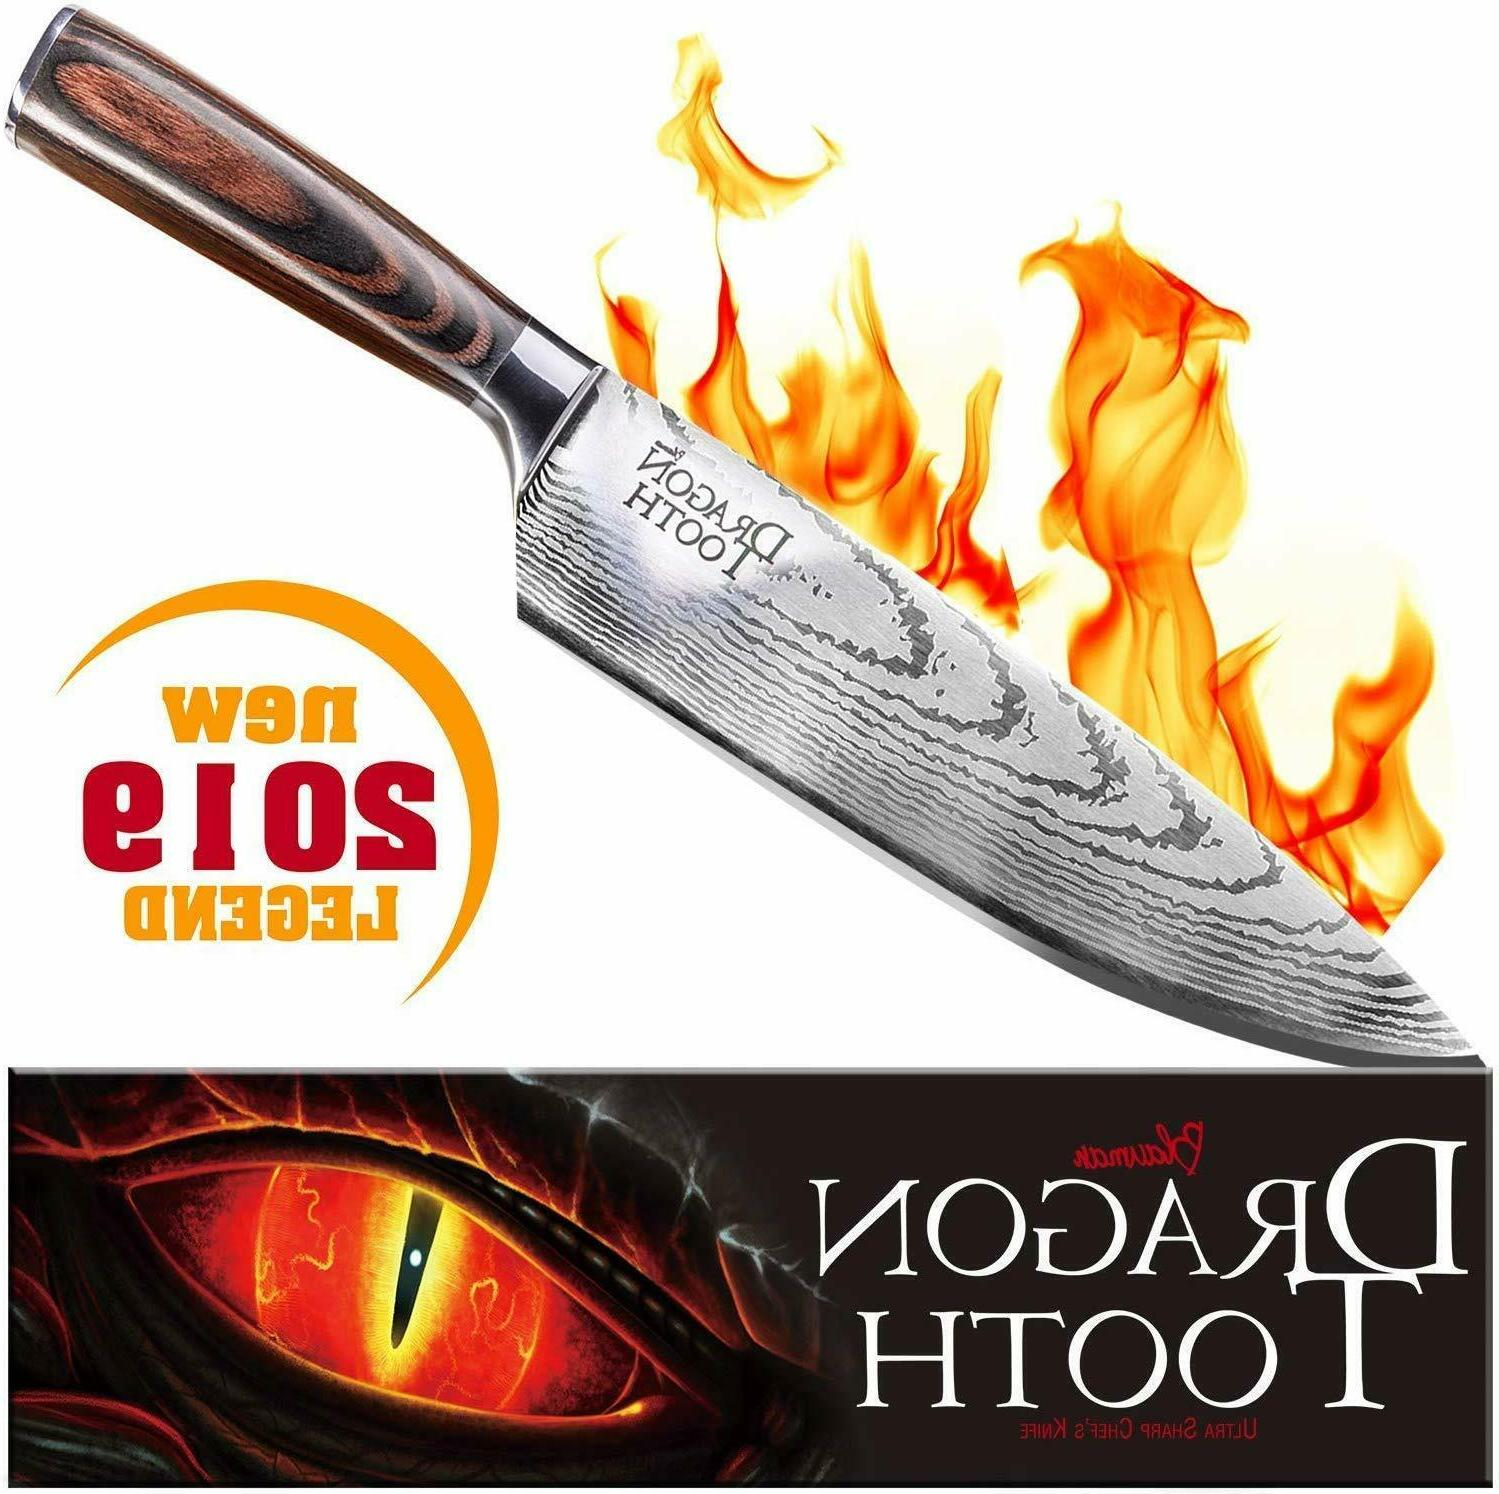 fire chef knife 8 inch stainless steel